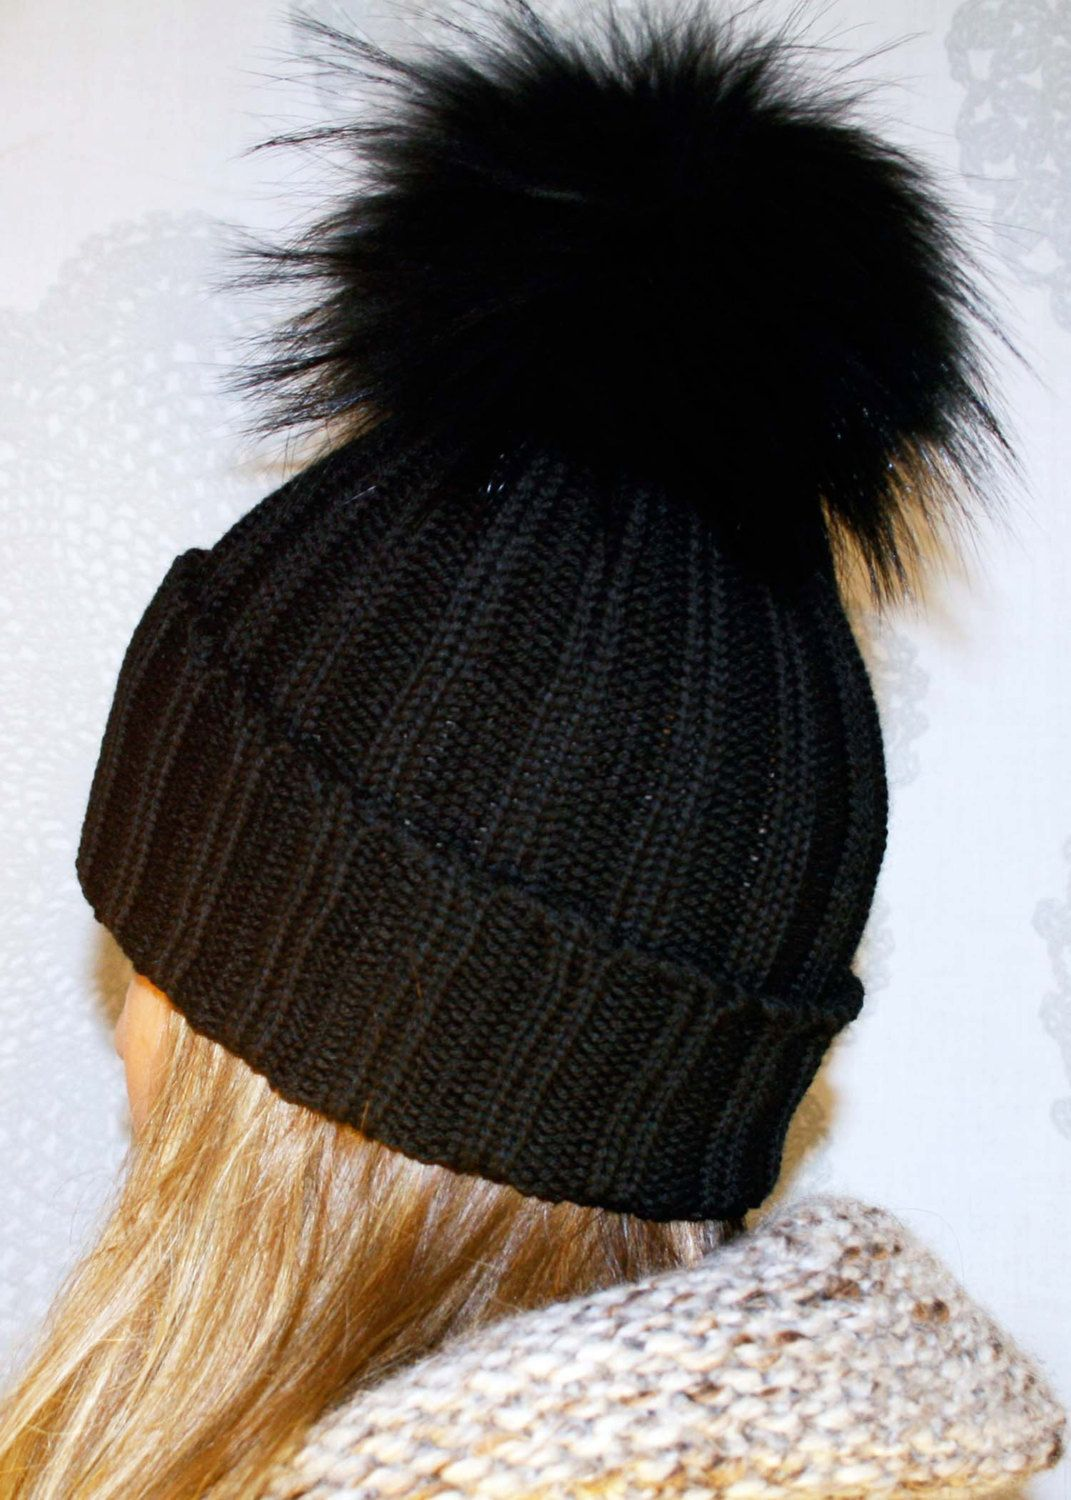 eb7550929531d Luxury Ribbed Knit Wool Hat with Oversized Fur Pom Pom by LindoF ...